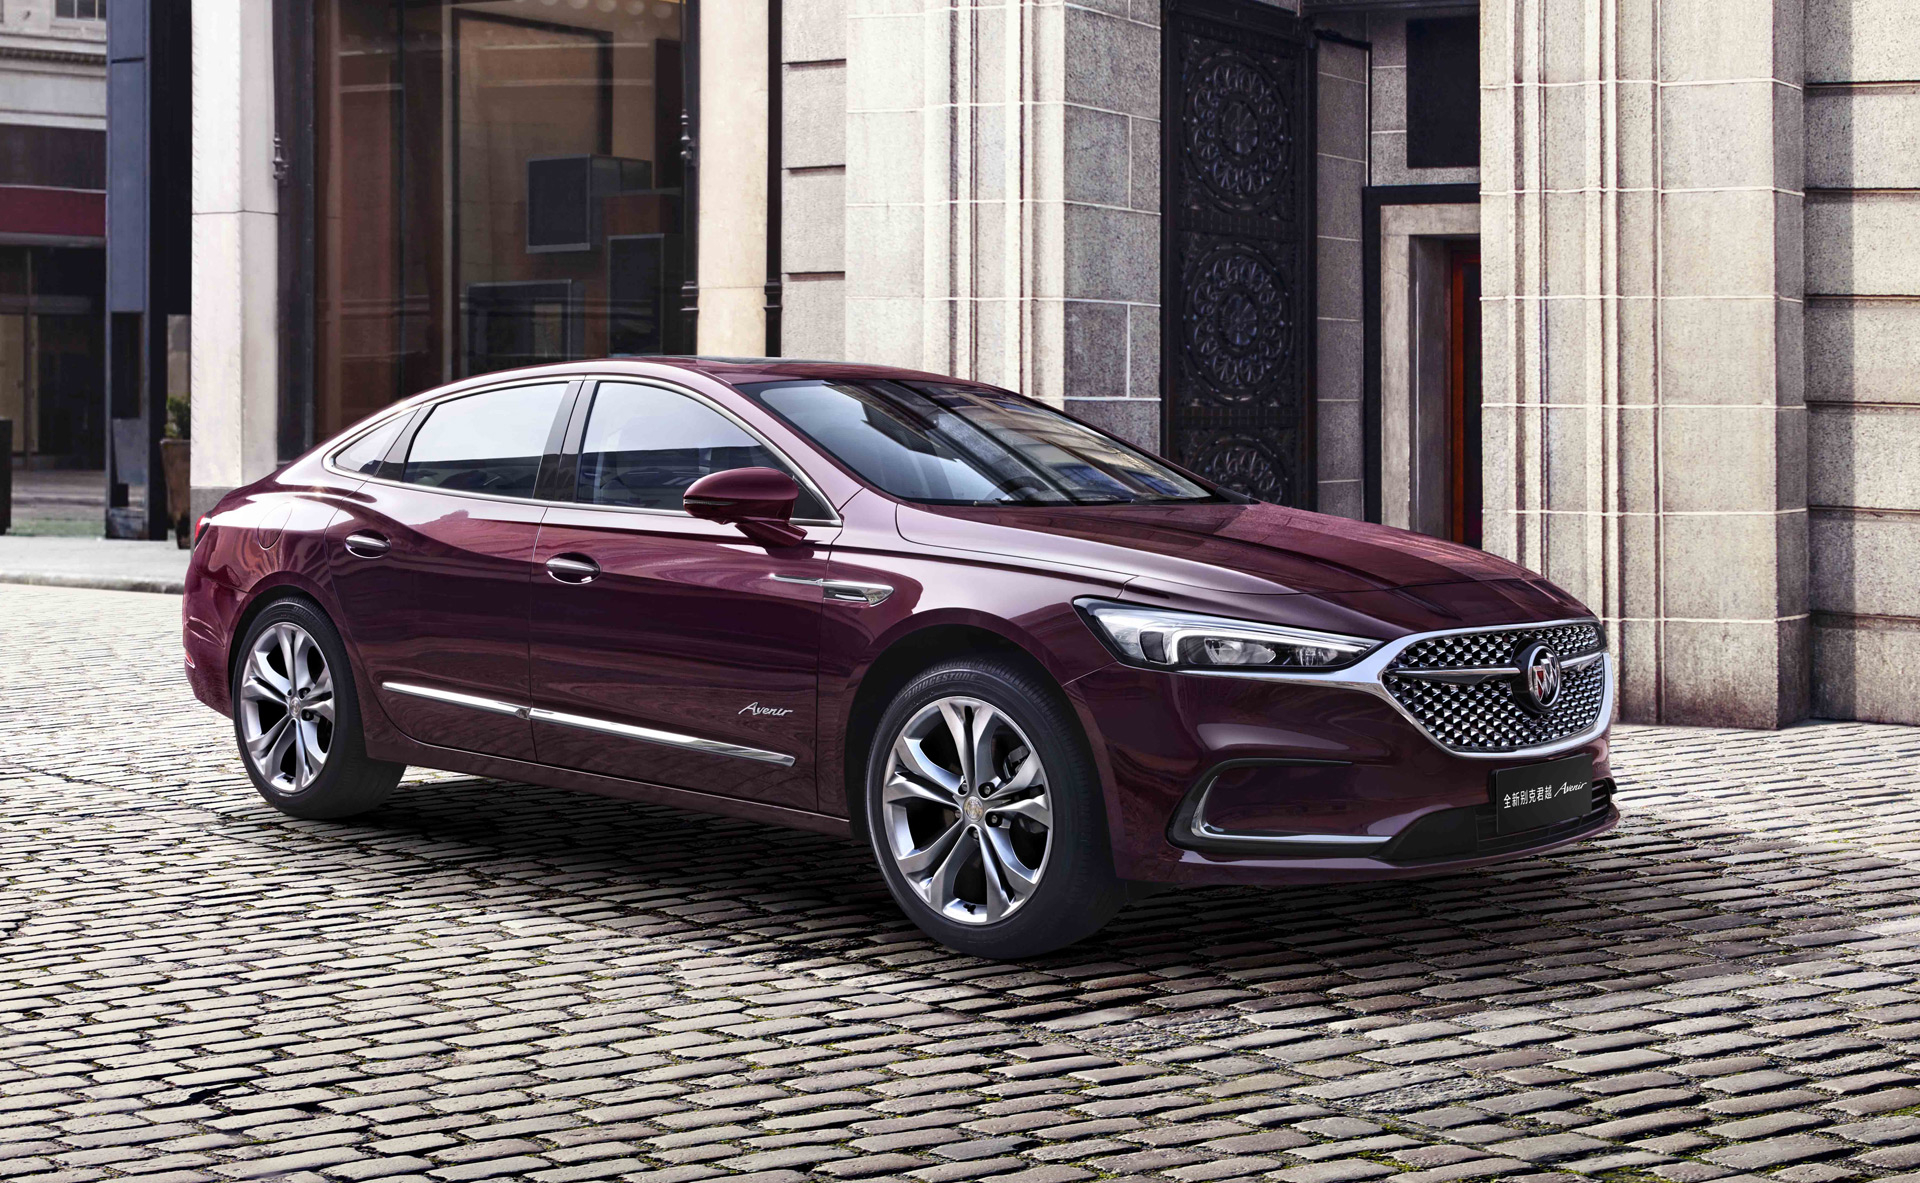 2020 Buick Lacrosse Made Handsome Just As It's Dropped In Us Picture Of A 2021 Buick Lacrosse